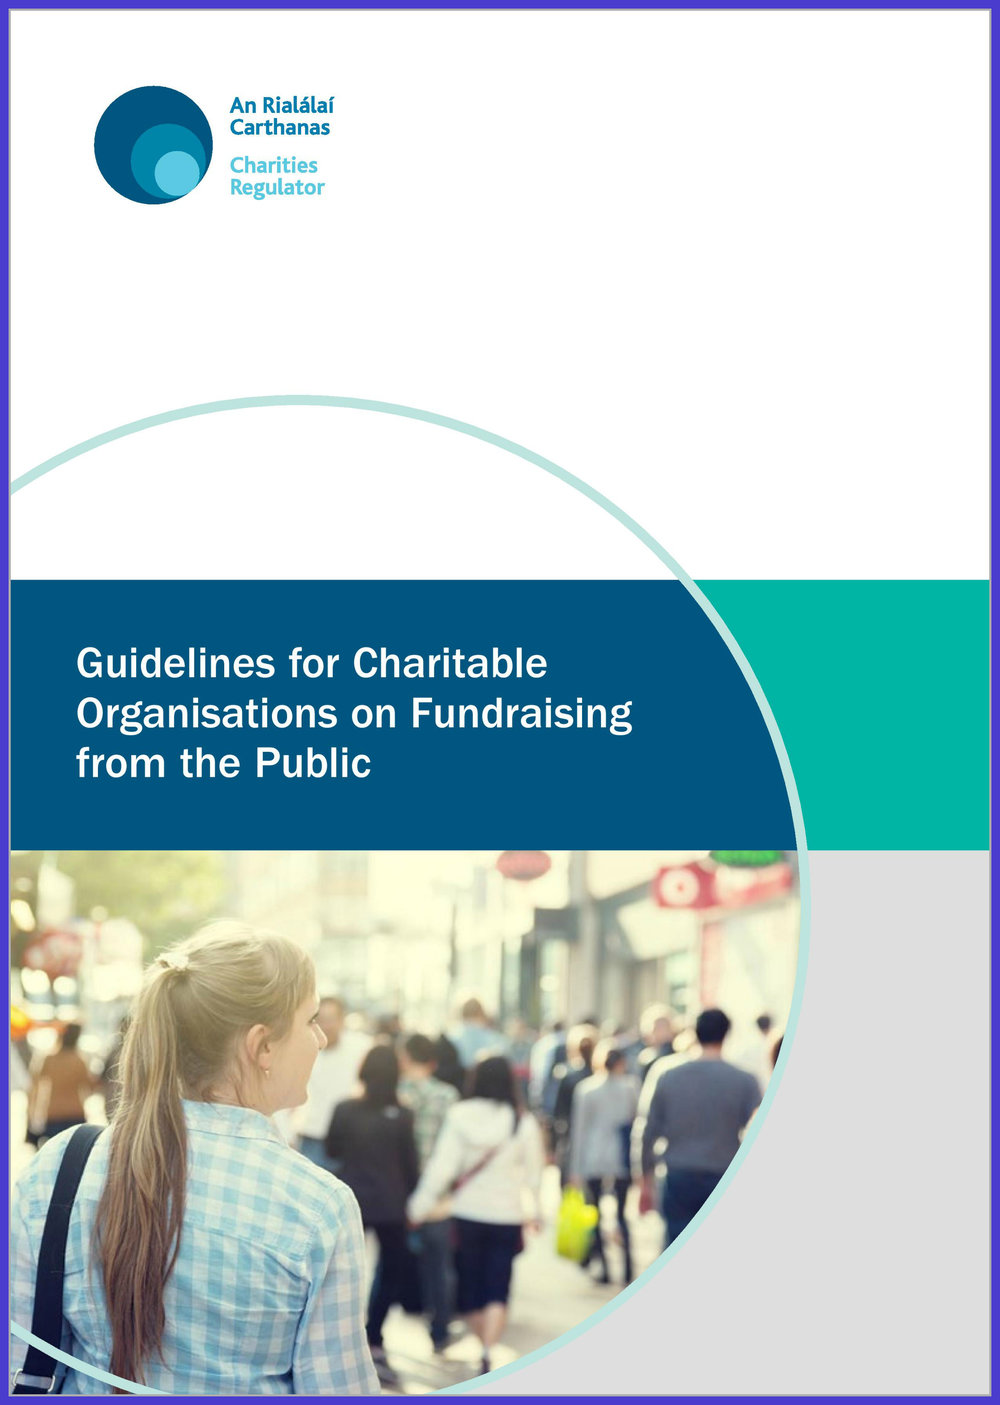 CRA Guidelines Front Page.jpg